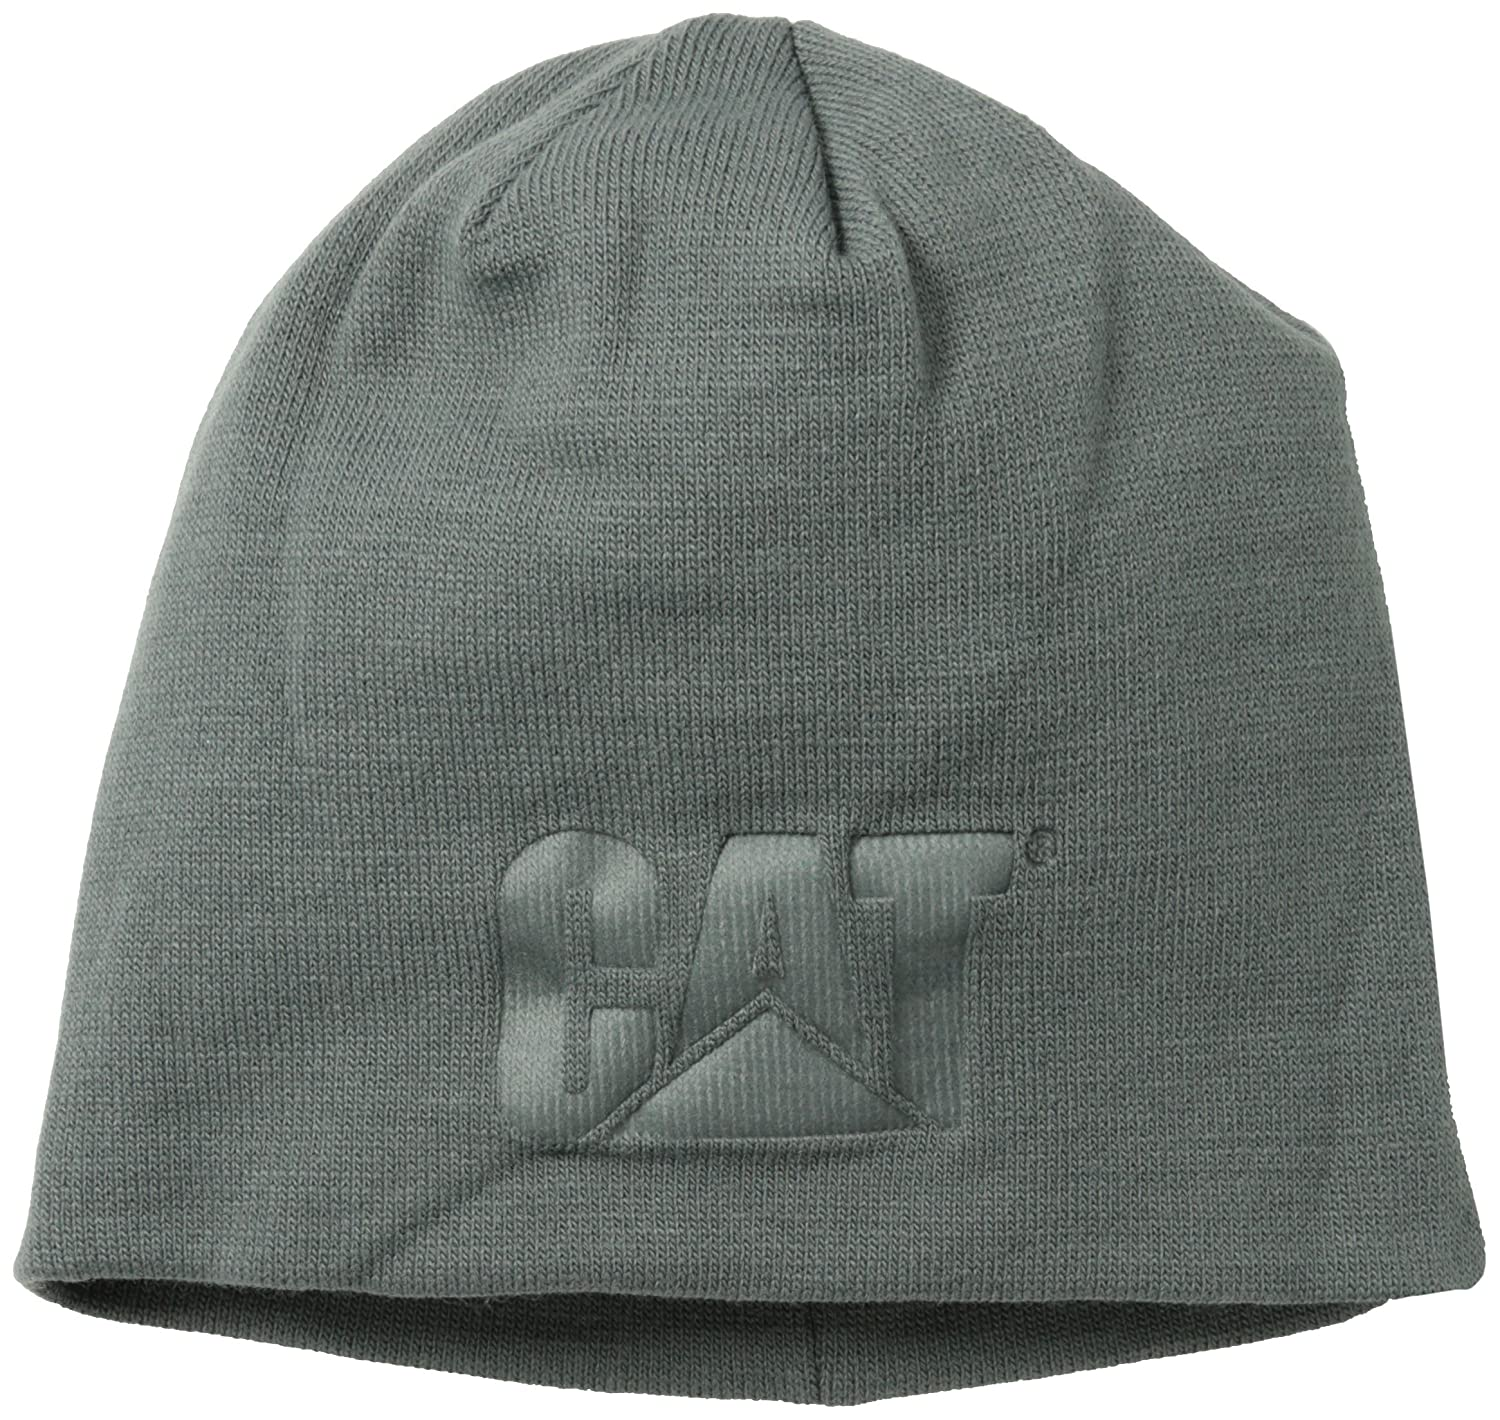 753623a9 Caterpillar Men's Trademark Knit Cap, Grey One Size at Amazon Men's  Clothing store: Skull Caps